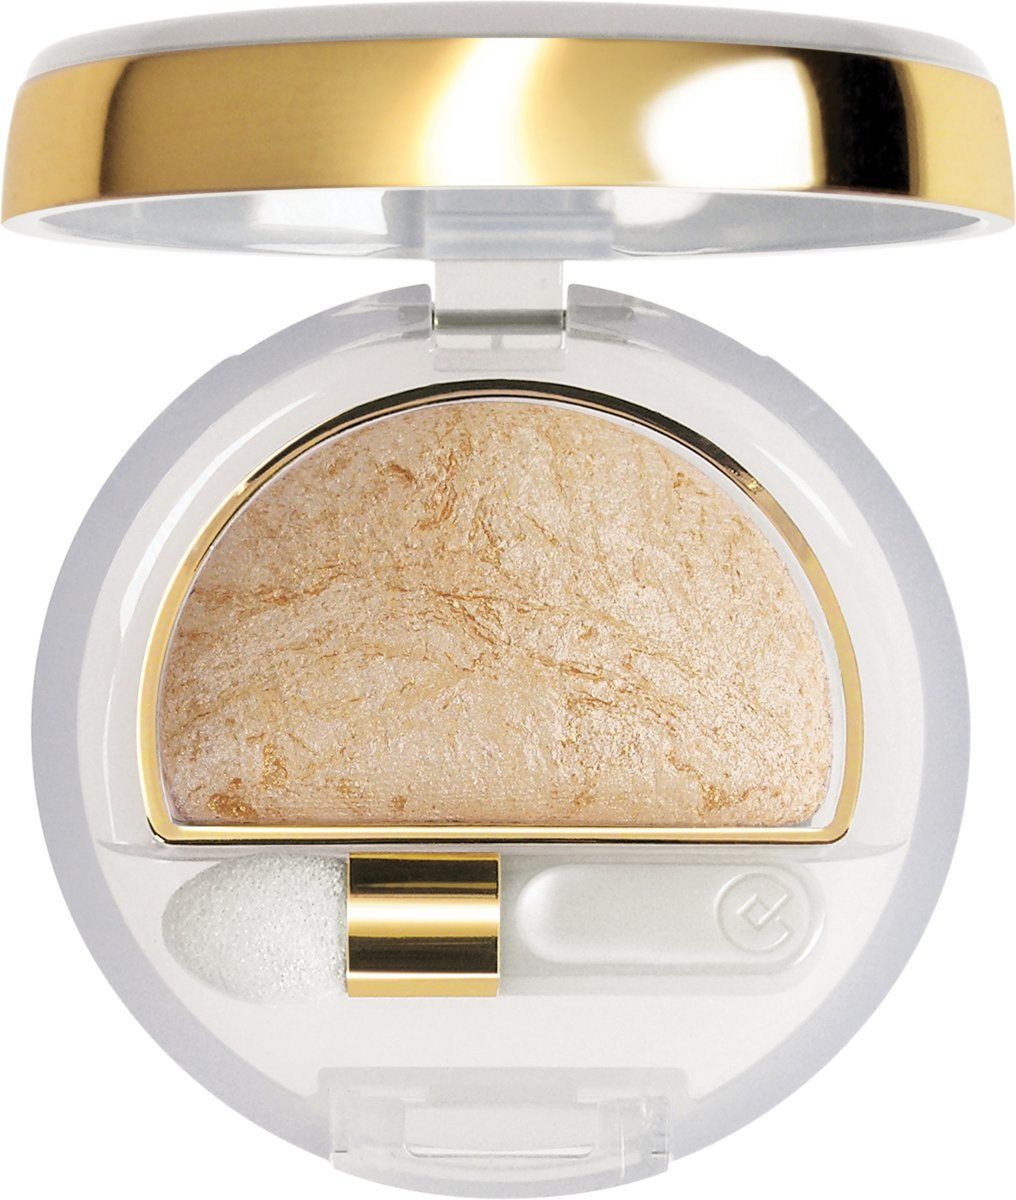 Collistar Double Effect Wet & Dry Eyeshadow - 2 Champagne - Oogschaduw